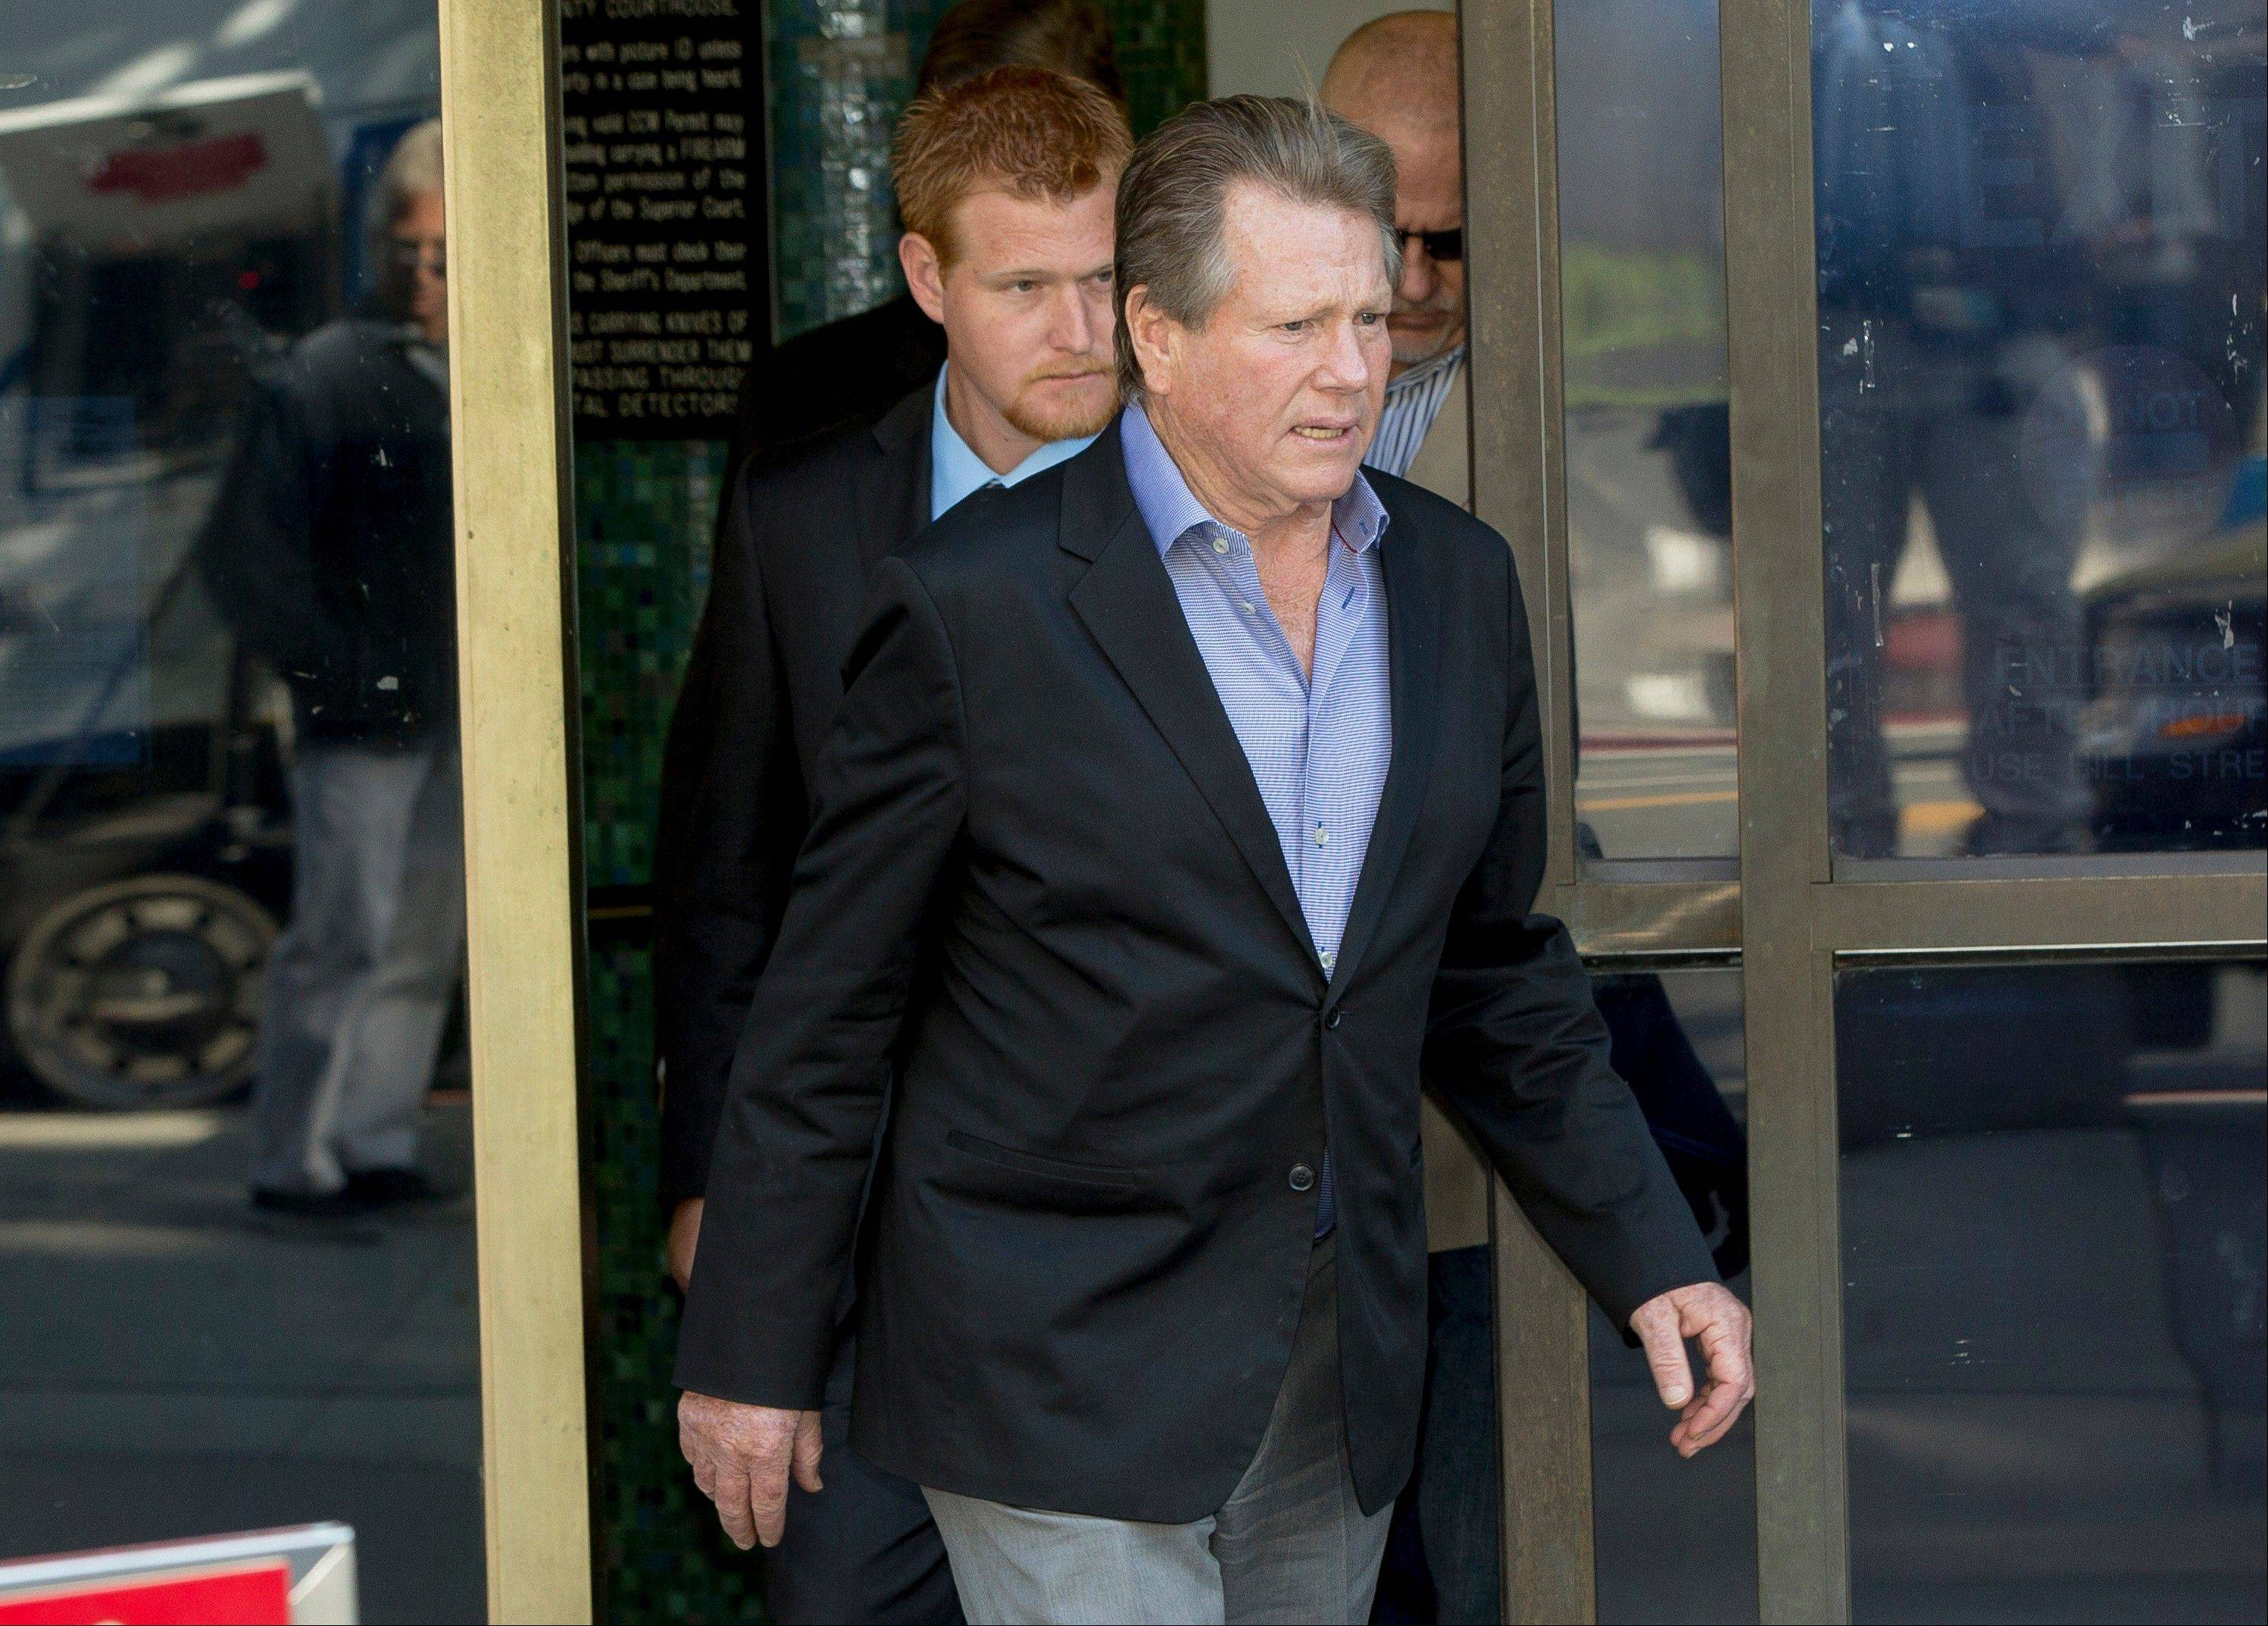 Ryan O'Neal, center, followed by his son, Redmond O'Neal, as they exit court for a lunch break in Los Angeles.